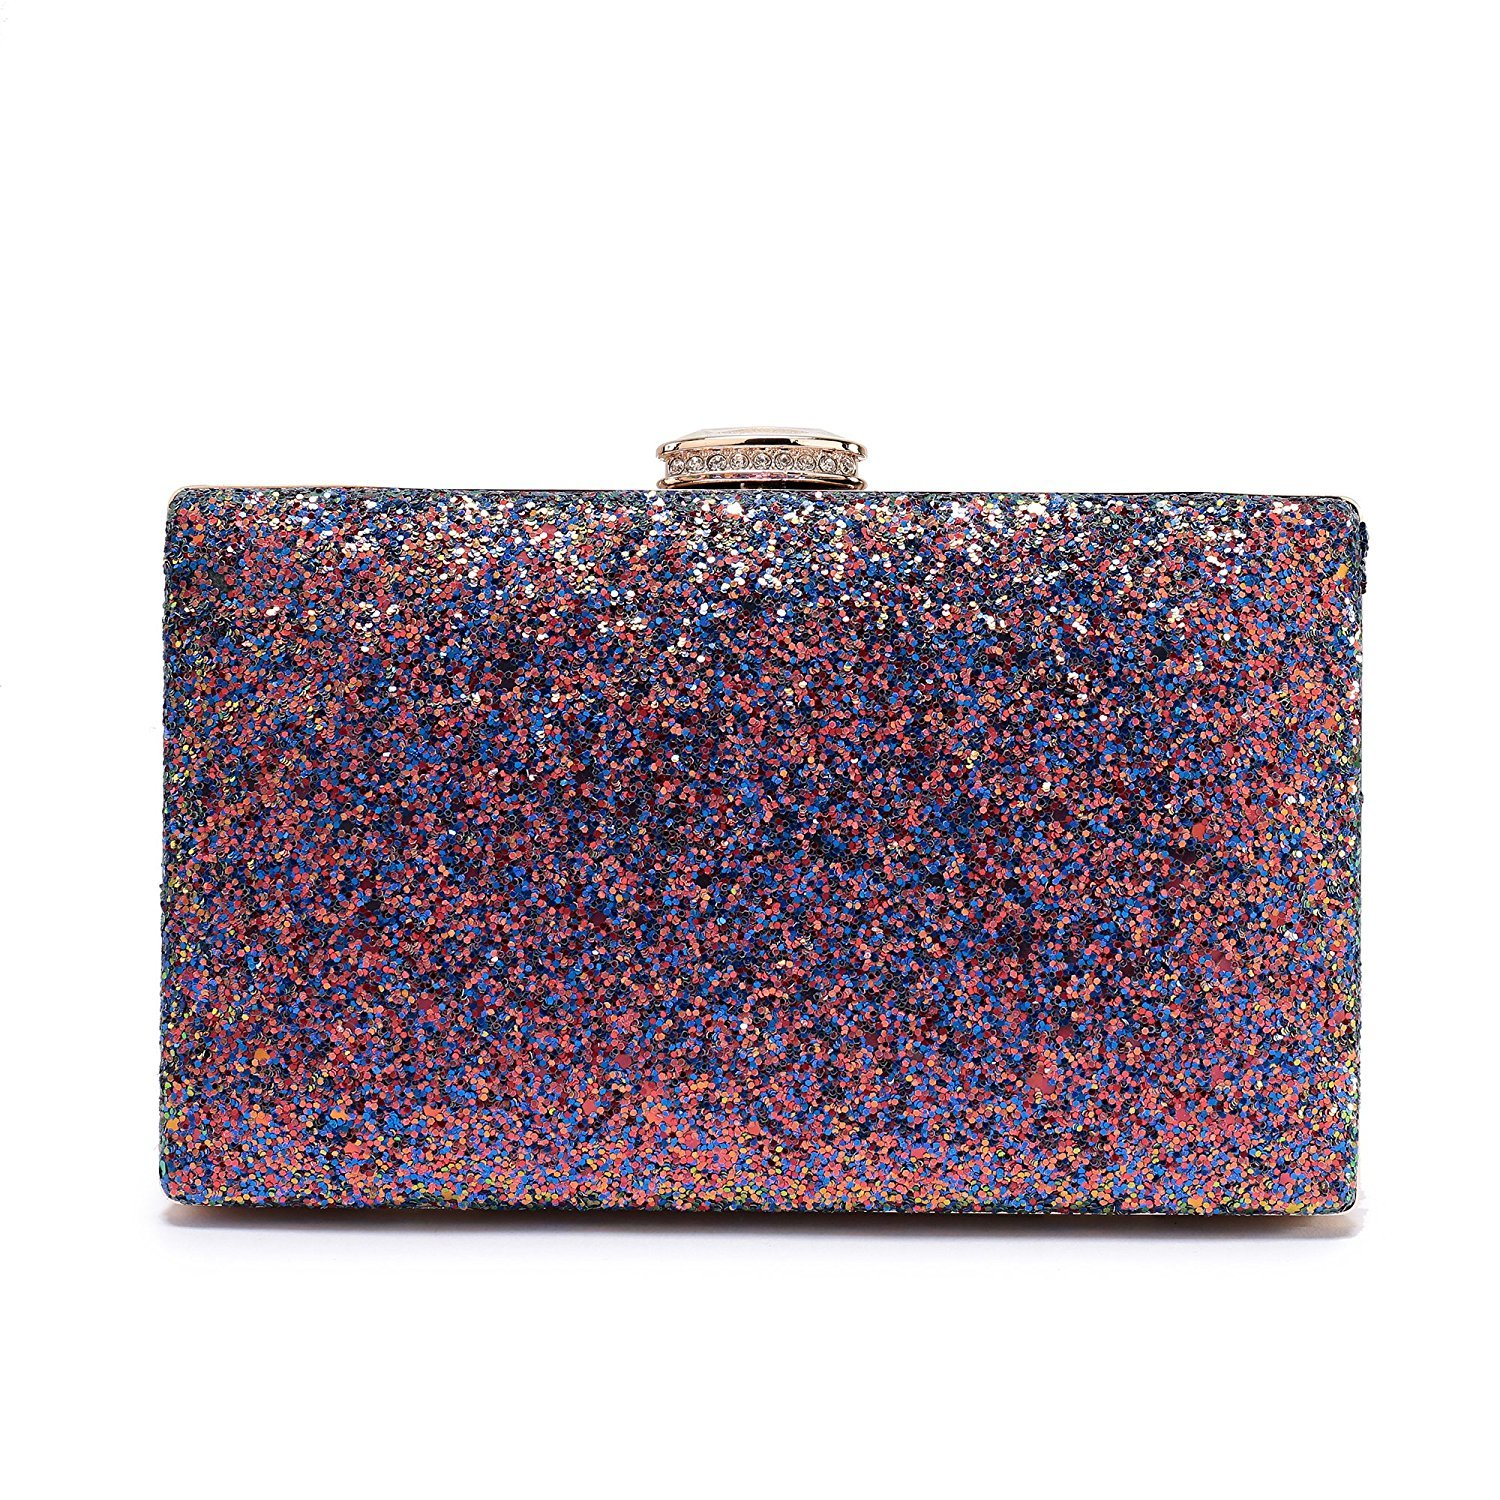 Minicastle Sparkling Clutch Purse Elegant Glitter Evening Bags Bling Evening Handbag For Dance Wedding Party Prom Bride (並行輸入品) B07CZCNFS7 パープル One Size